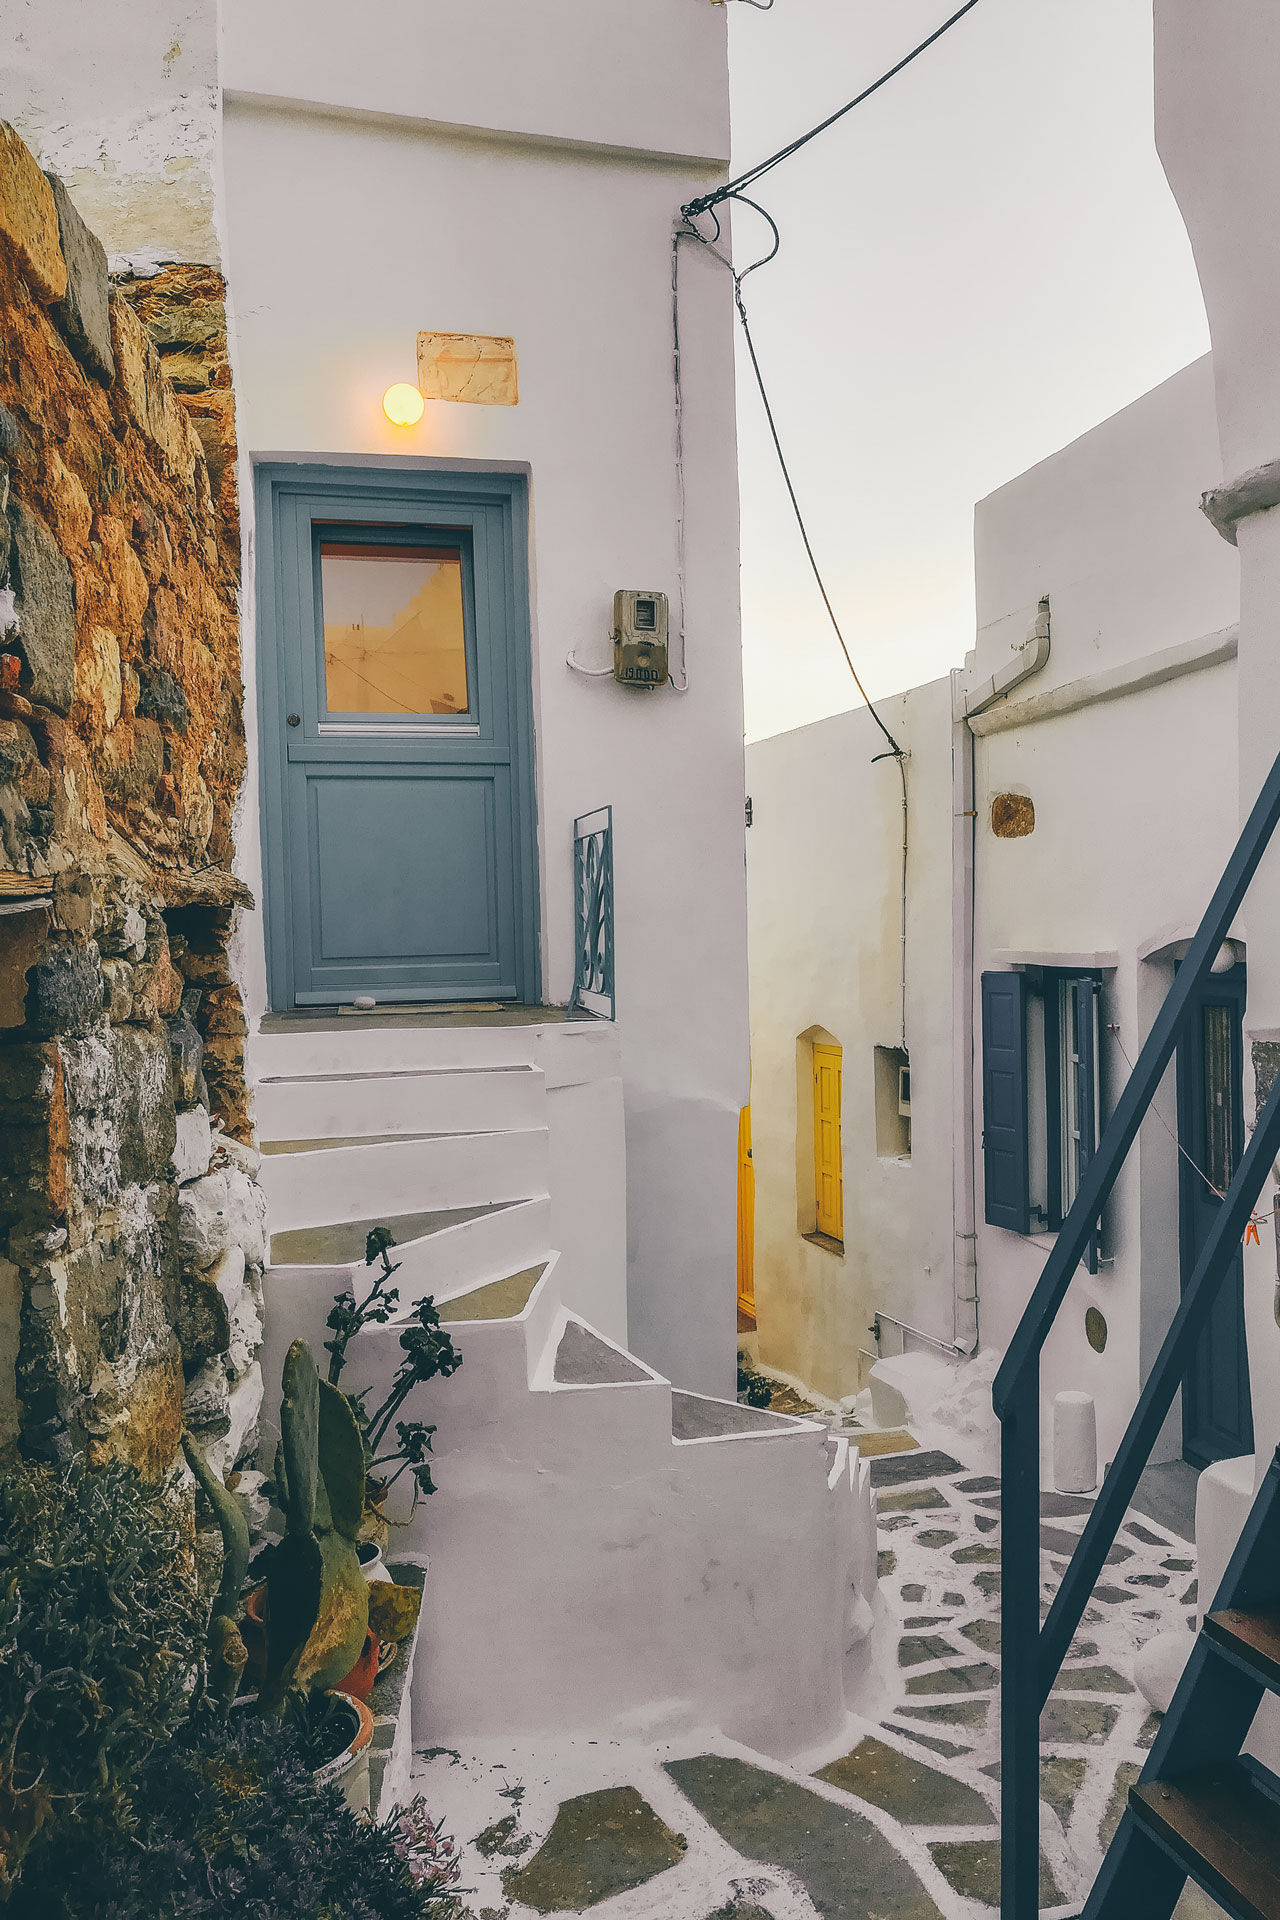 The architecture, churches and whitewashed alleyways are unmistakably Cycladic